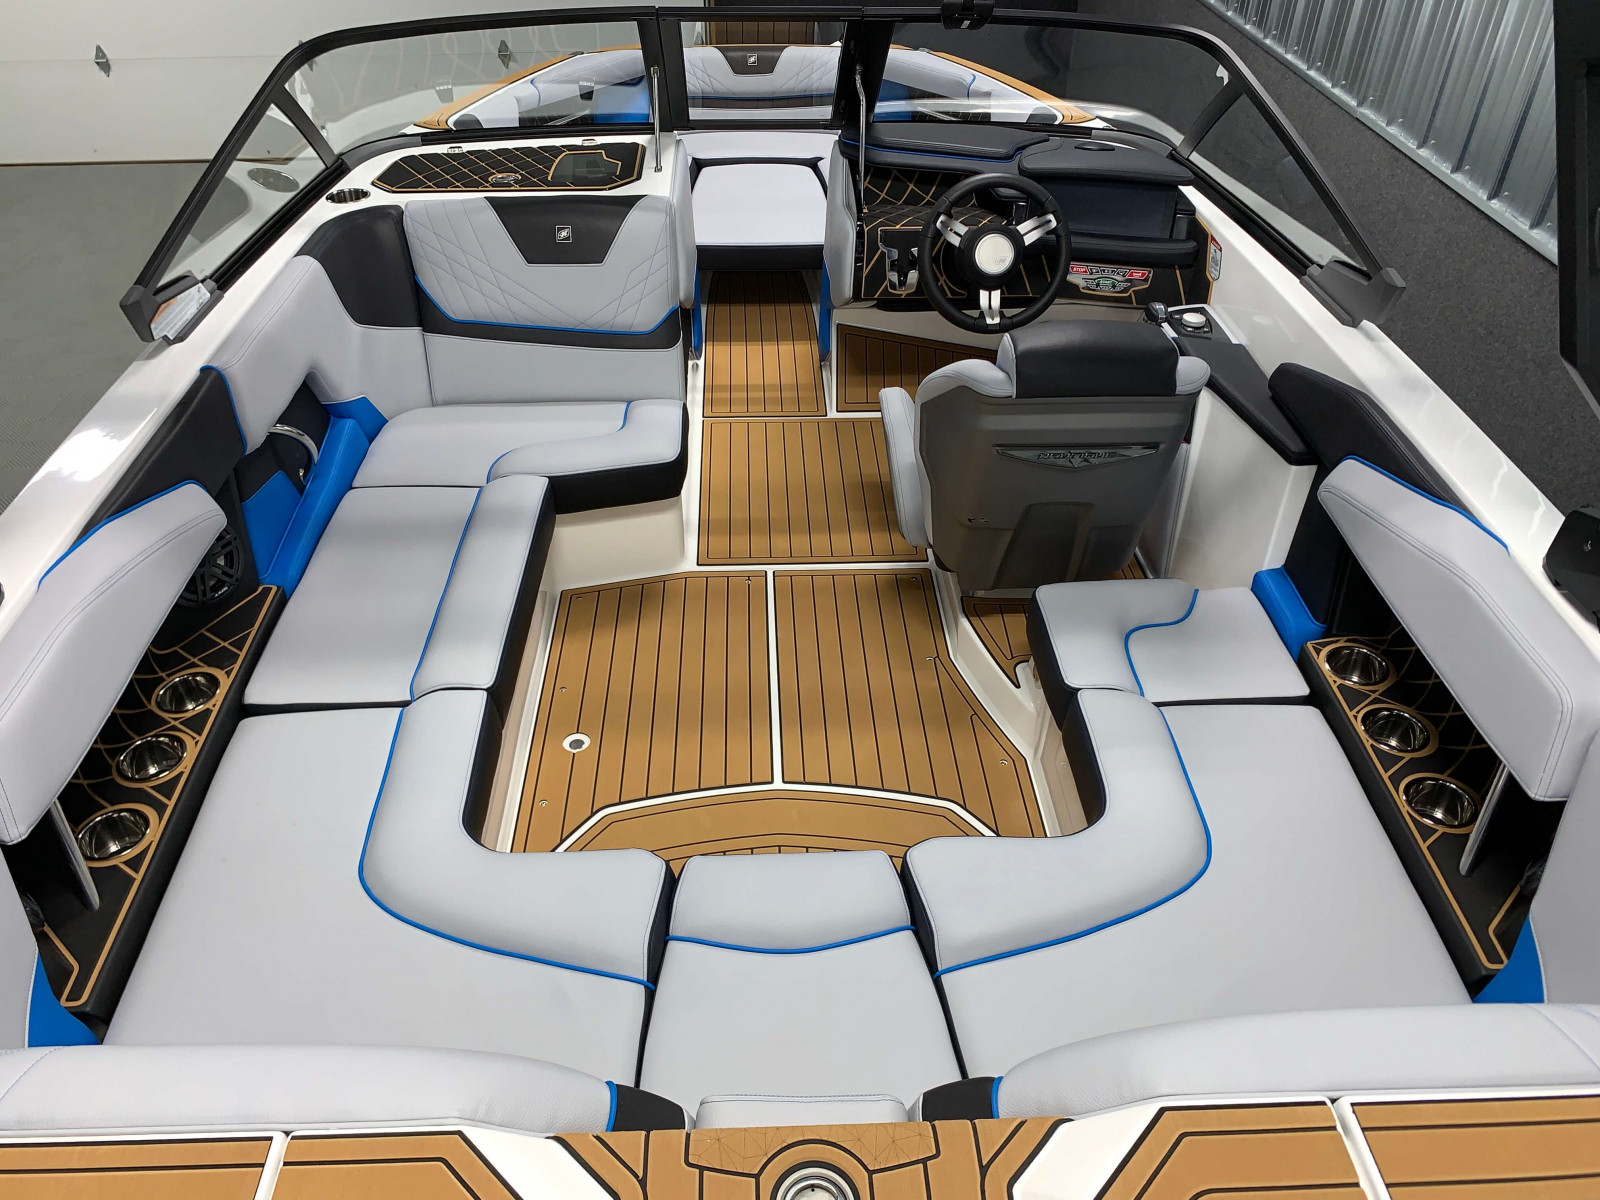 Interior Layout of the 2021 Nautique GS20 Wake Boat